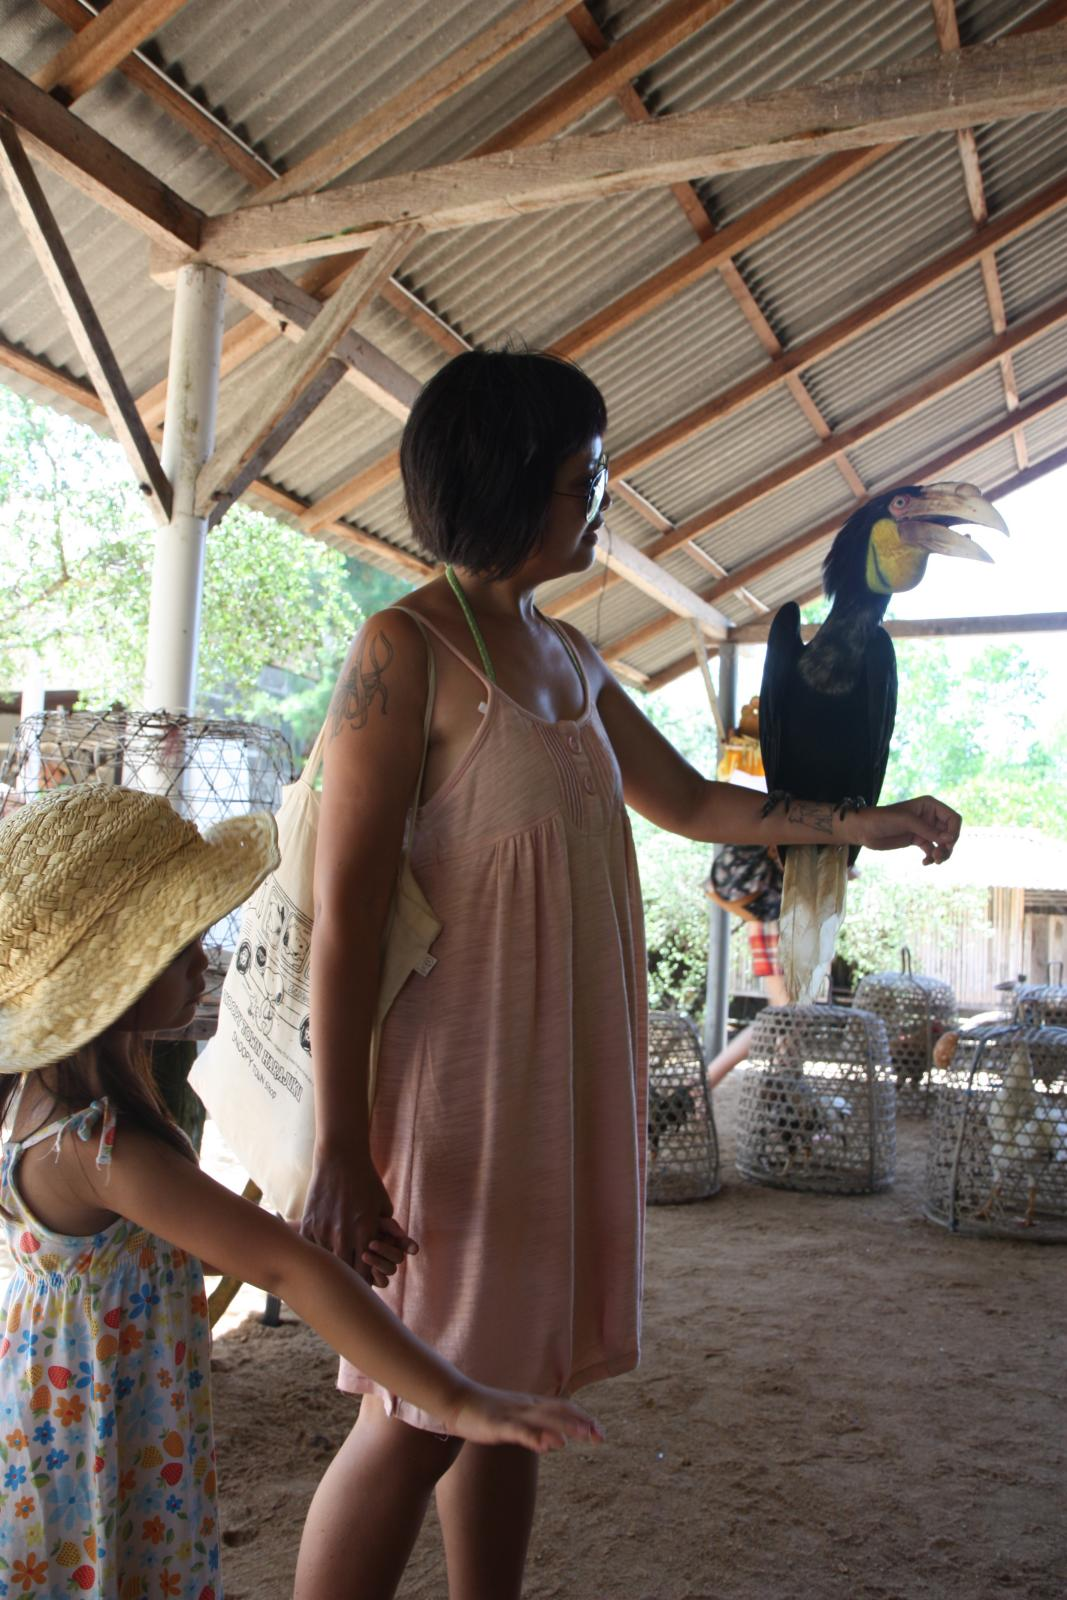 holding a wreathed hornbill